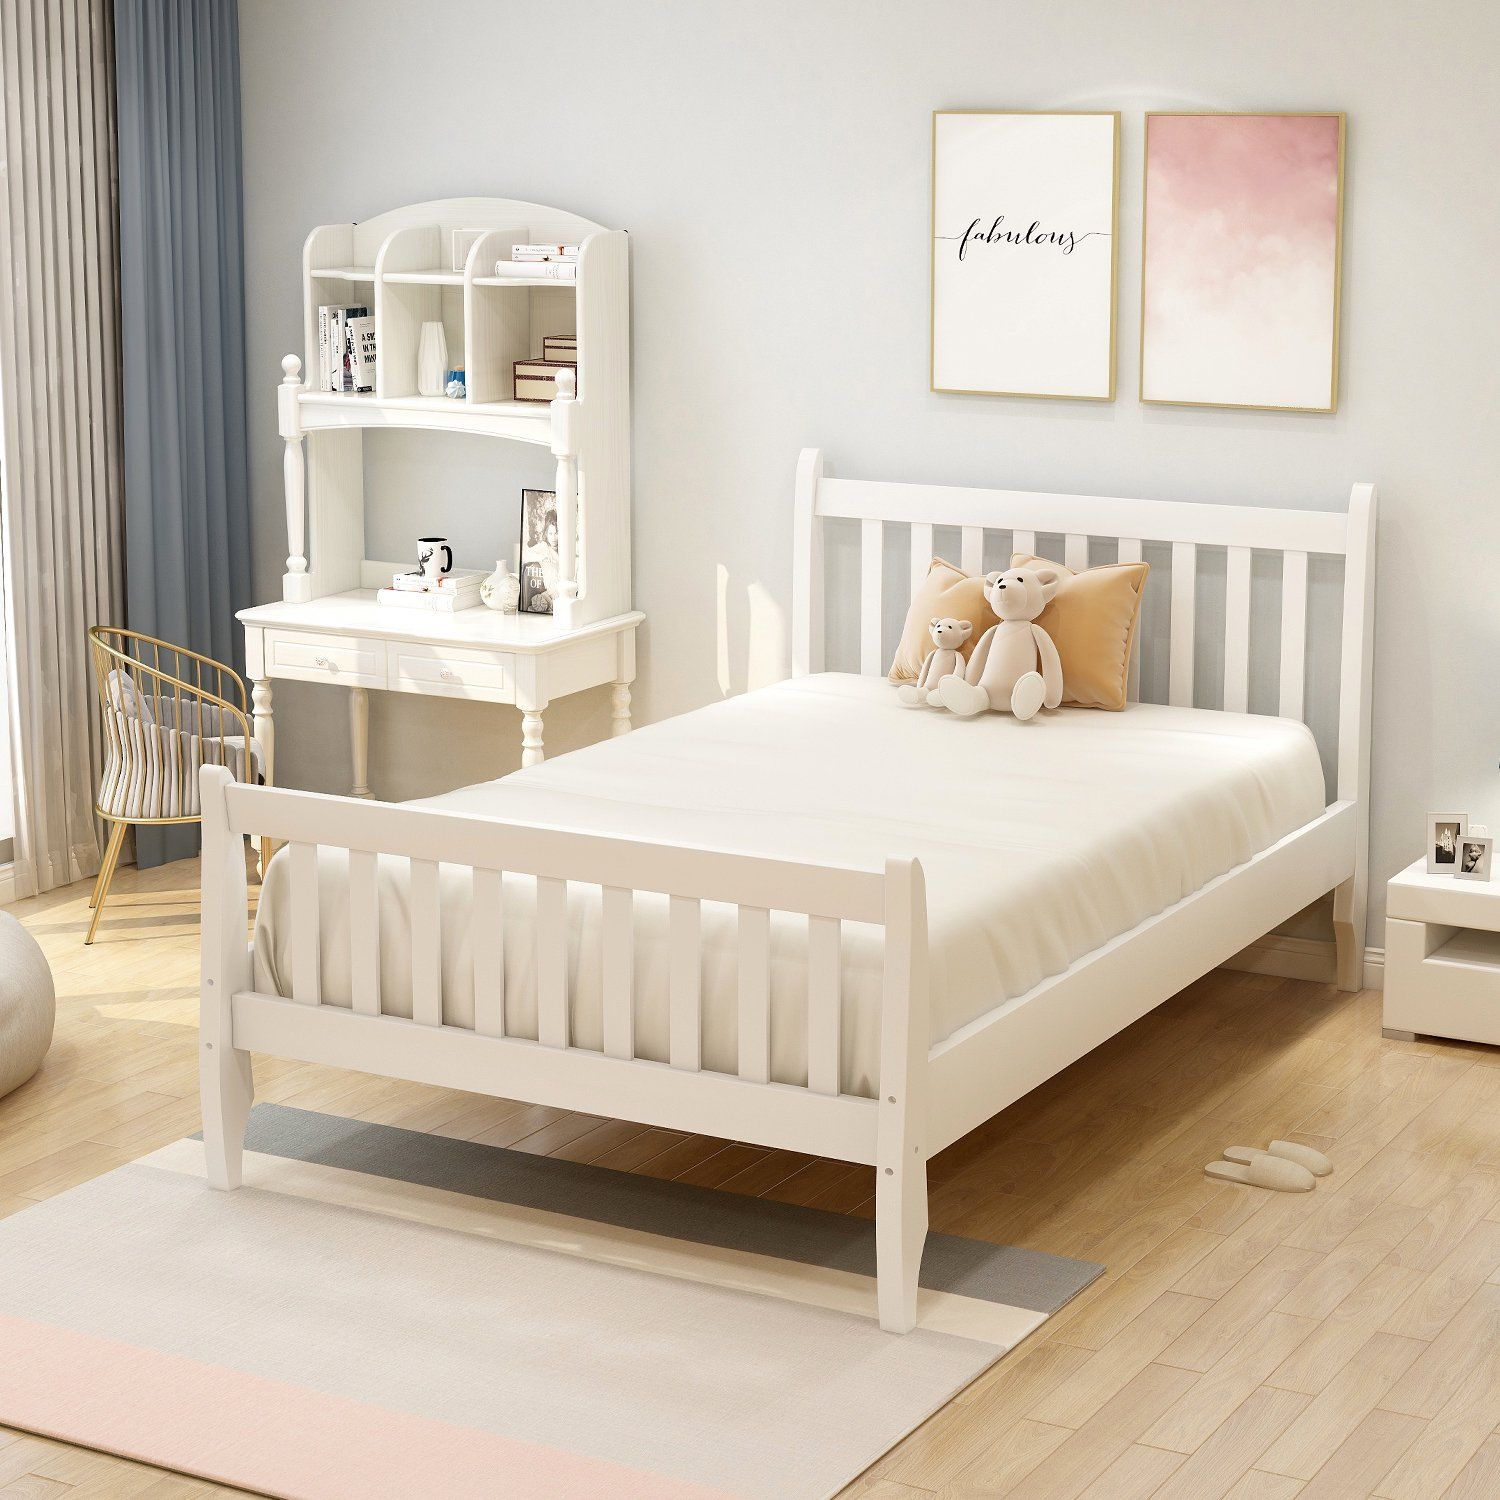 Jumper Bed Wood Twin Bed Upholstered Platform Bed Twin Bed Frame Mattress Foundation With Headboard And Footboard Multiple Colors Walmart Com Twin Bed Frame Bed Frame Mattress Twin Platform Bed Twin bed frame with headboard and footboard